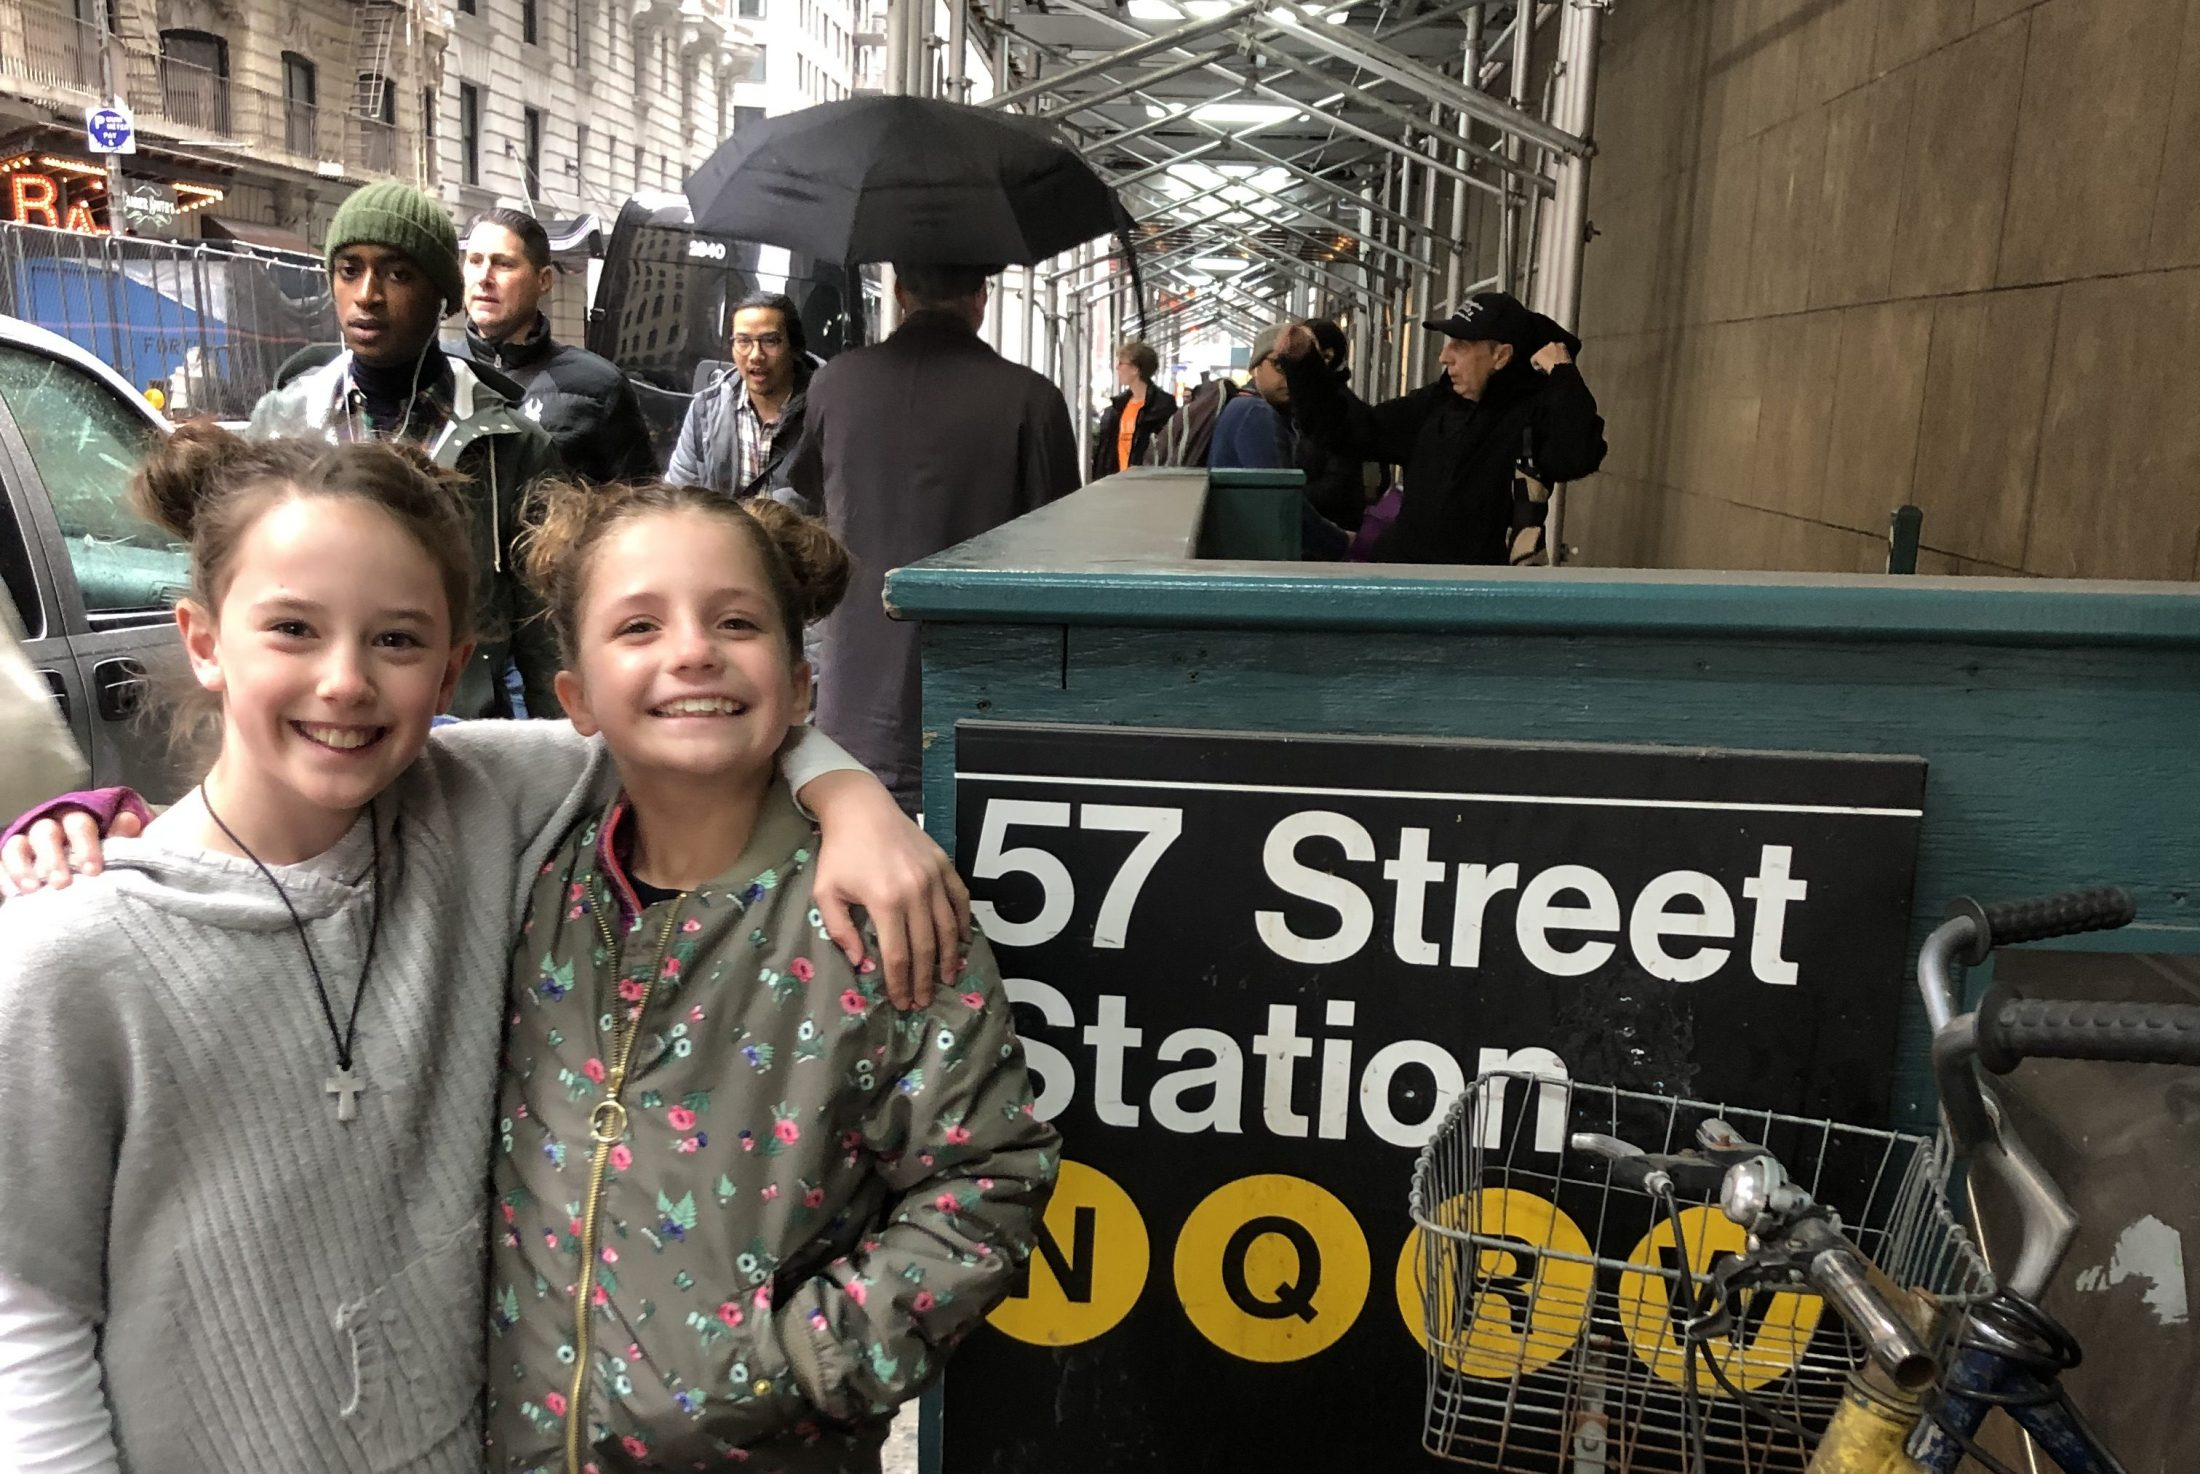 DC widow blog writer Marjorie Brimley's daughter Claire outside a subway station with her cousin in NYC